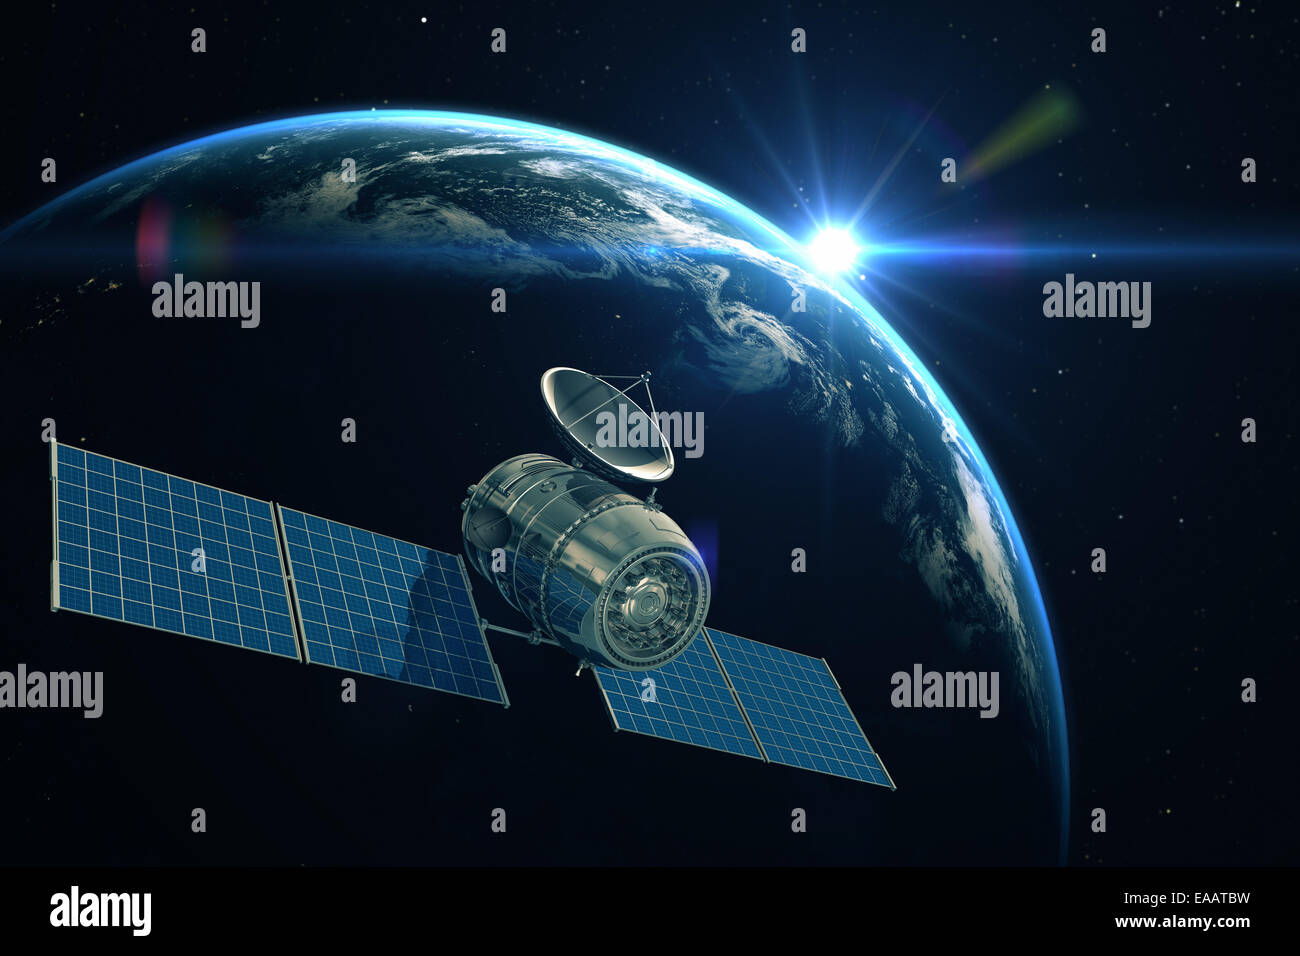 Satellite is orbiting around the Earth - Stock Image